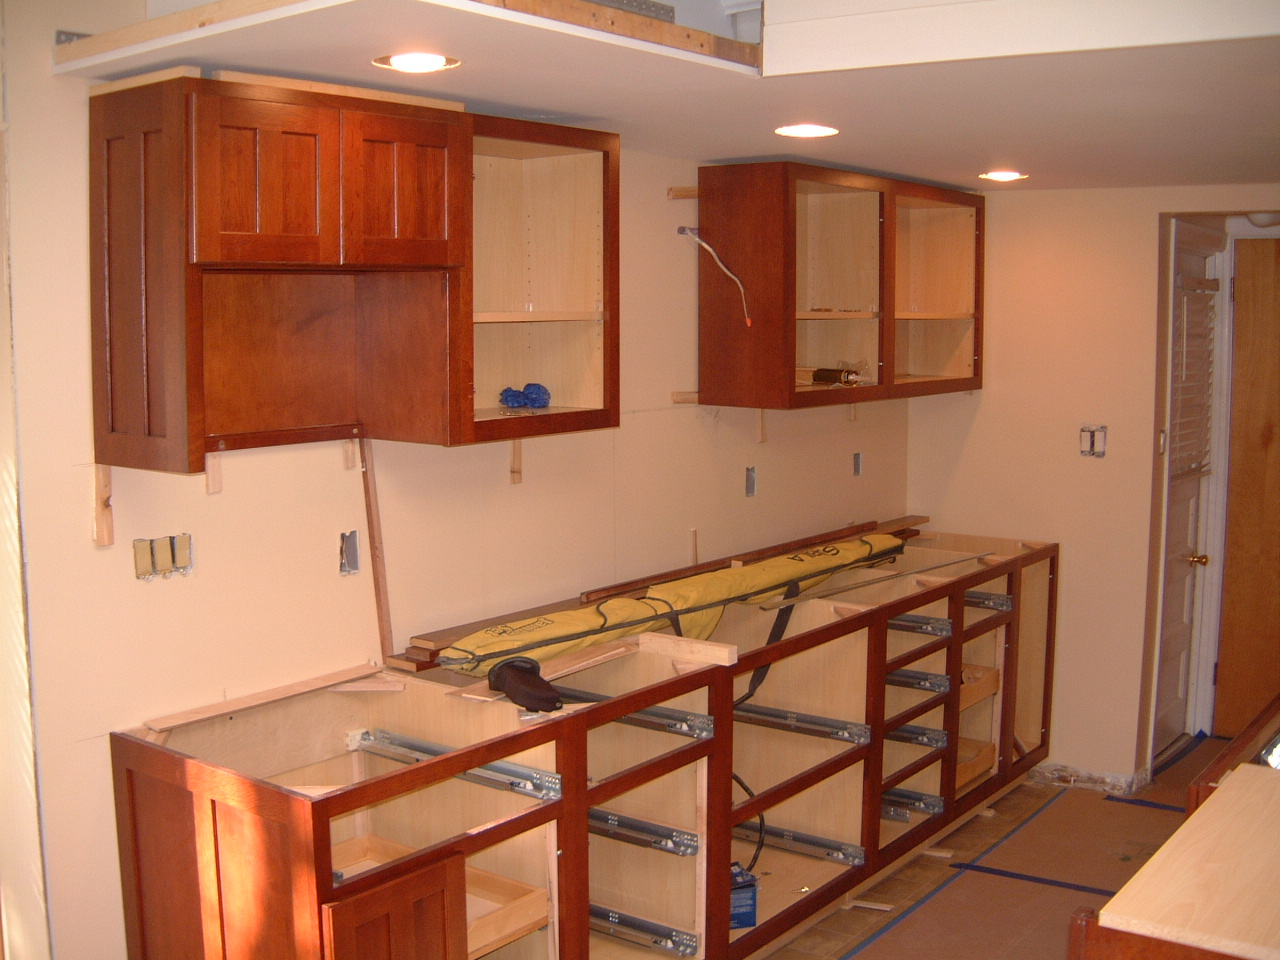 Springfield kitchen cabinet install remodeling designs for Cabinet installation